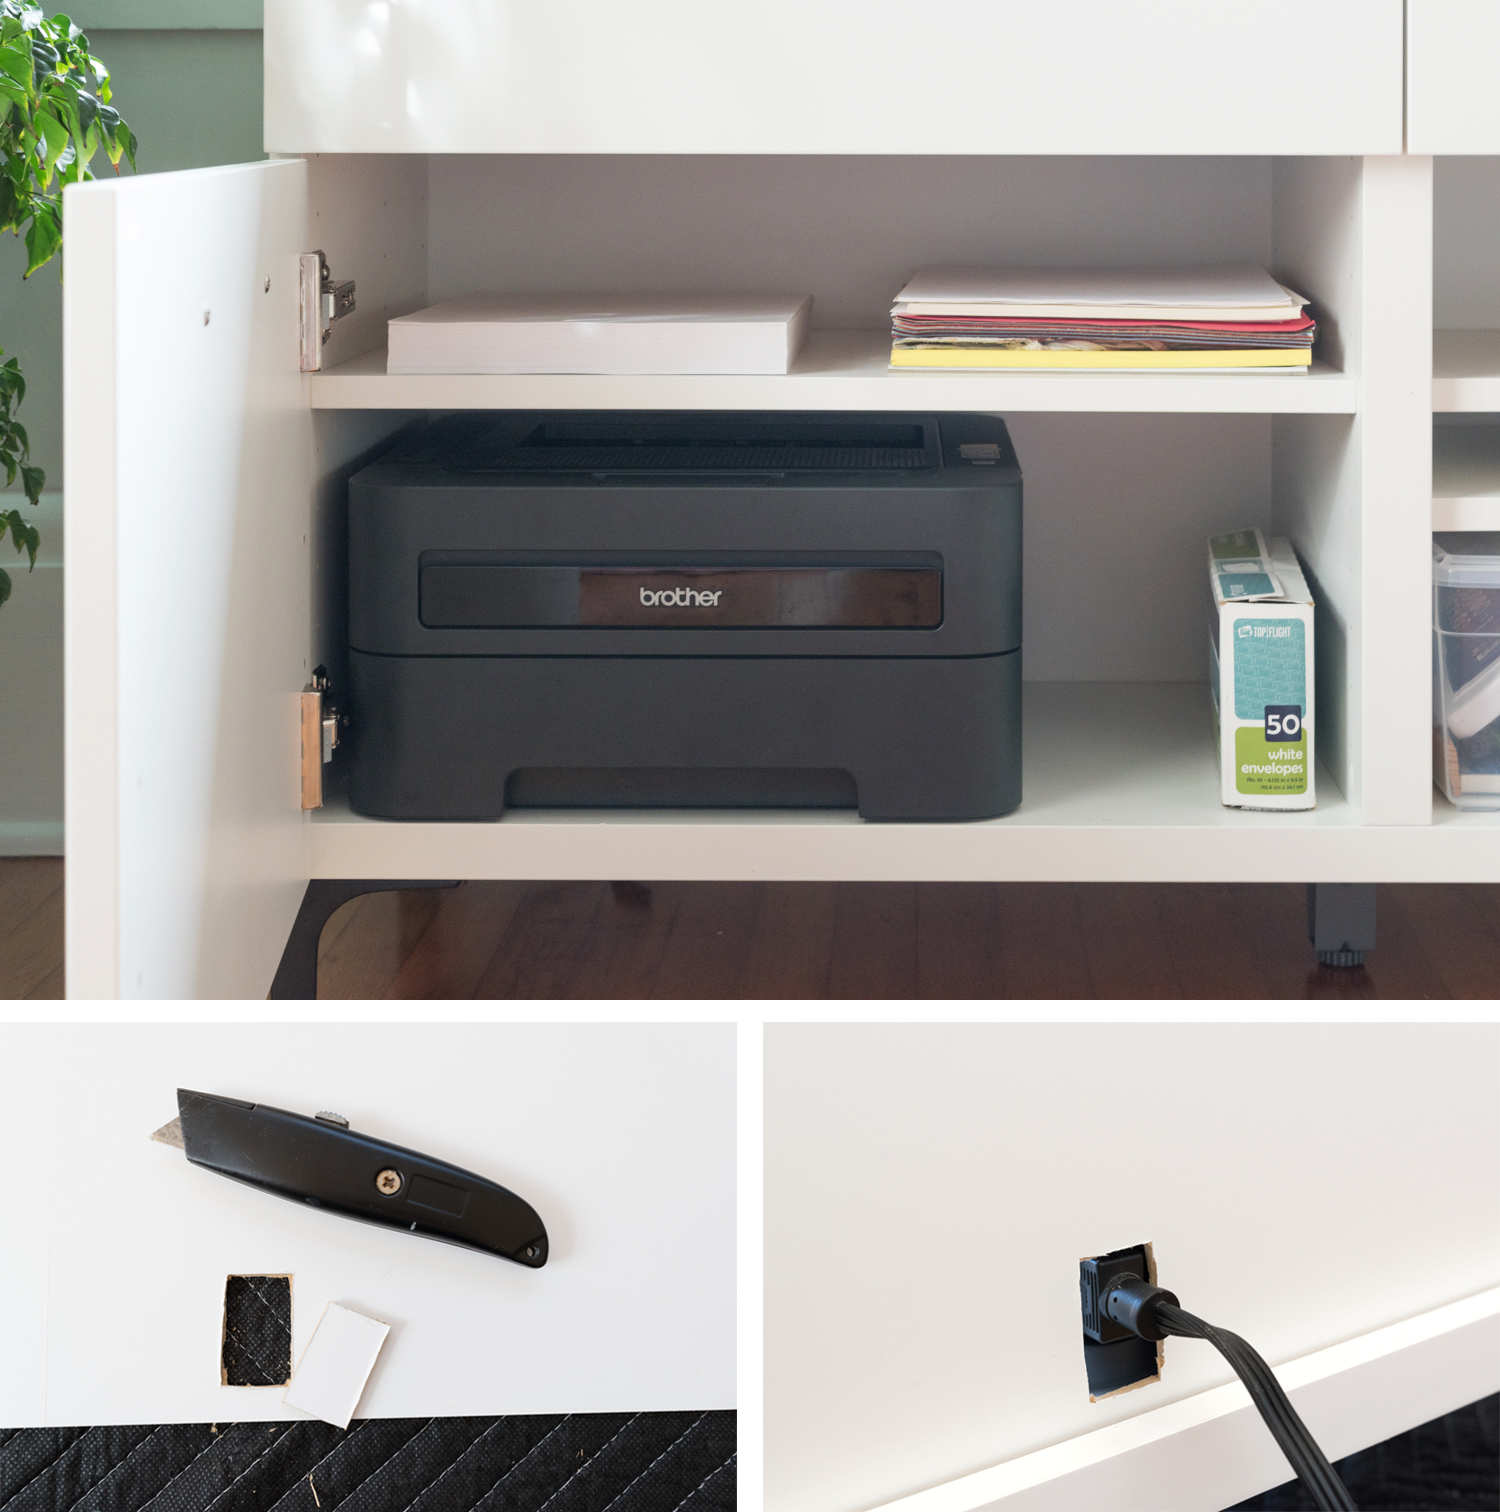 cord management solutions hide printer in cabinet.jpg